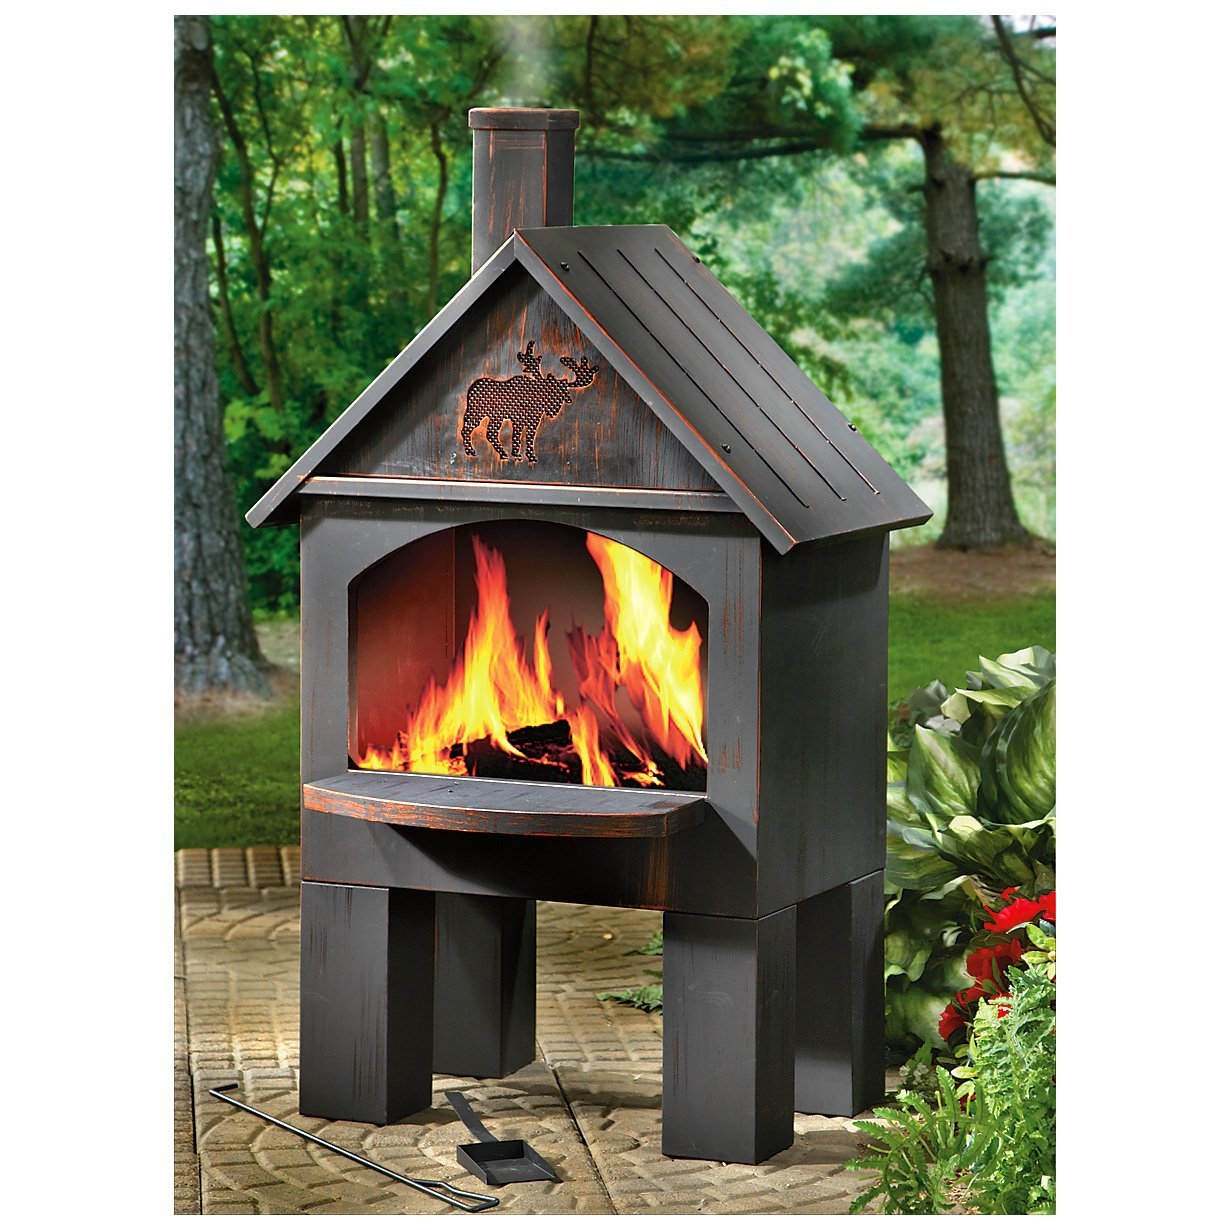 Garden Treasures Chimineastyle Fire Pit  Garden Landscape. Closet Ideas Martha Stewart. Kitchen Storage Wall Ideas. Stenciling Kitchen Cabinets Ideas. Porch Ideas Grill. Bulletin Board Ideas Home Organization. Kitchen Ideas Tiles. Basement Divider Ideas. Wood Craft Ideas Valentines Day